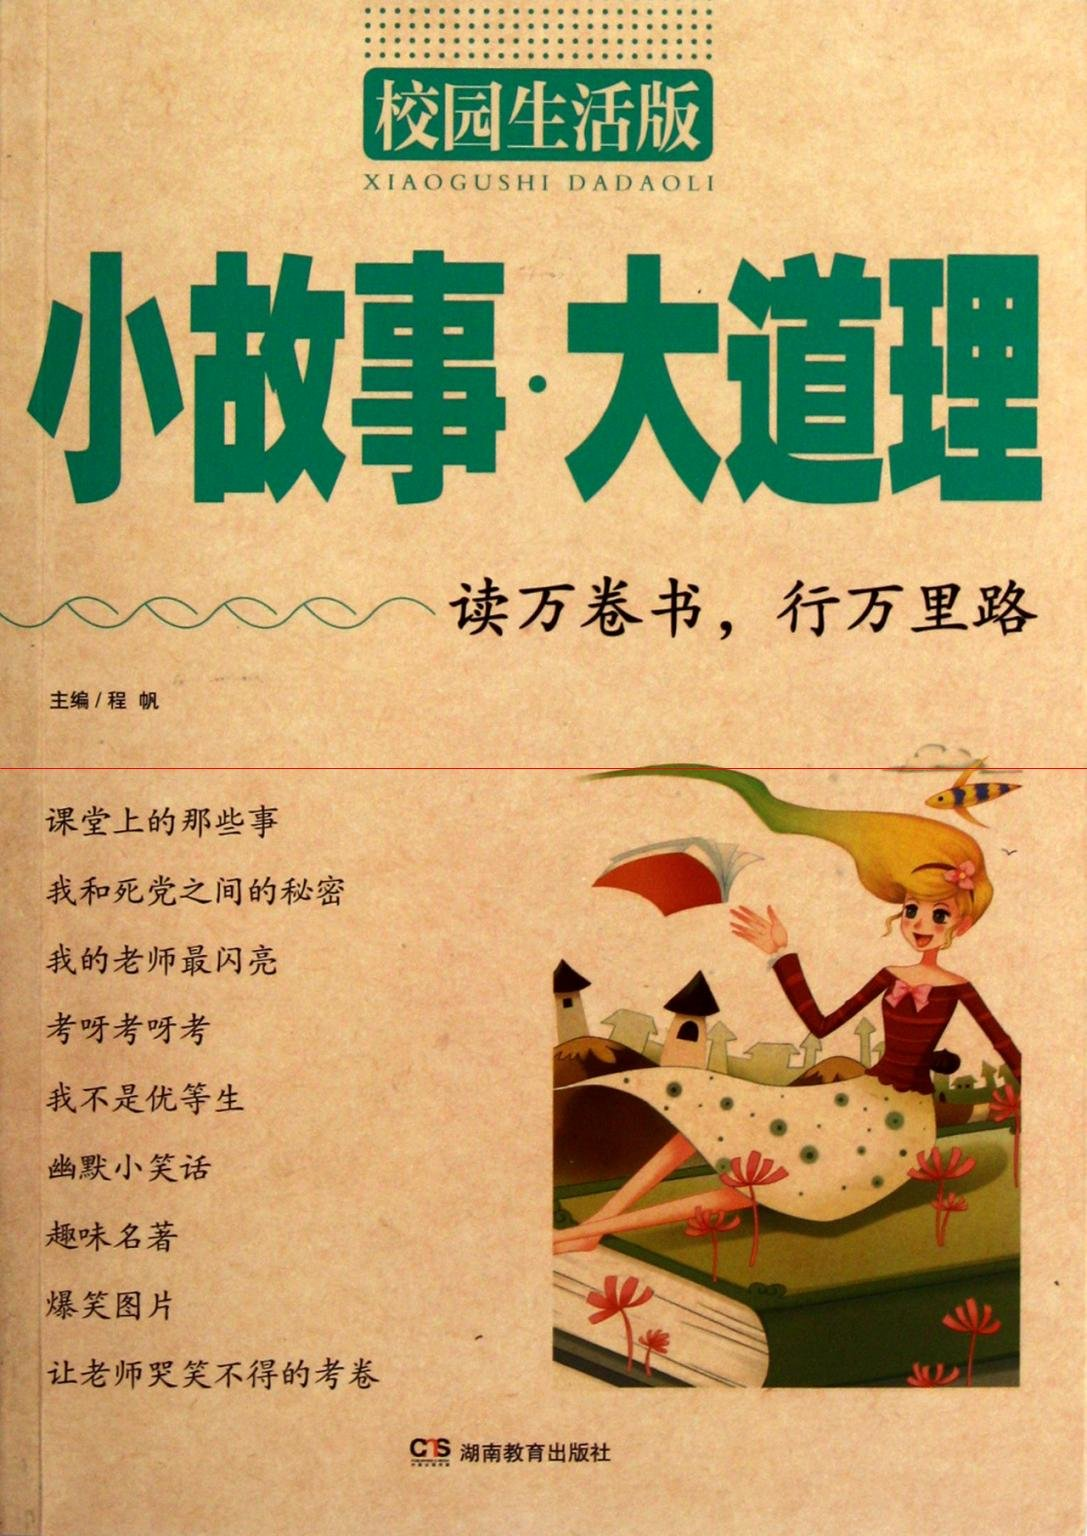 Download Campus Edition  Small Stories for Great Knowledge - Read Ten Thousand Books, Travel Ten Thousand Miles. (Chinese Edition) ebook